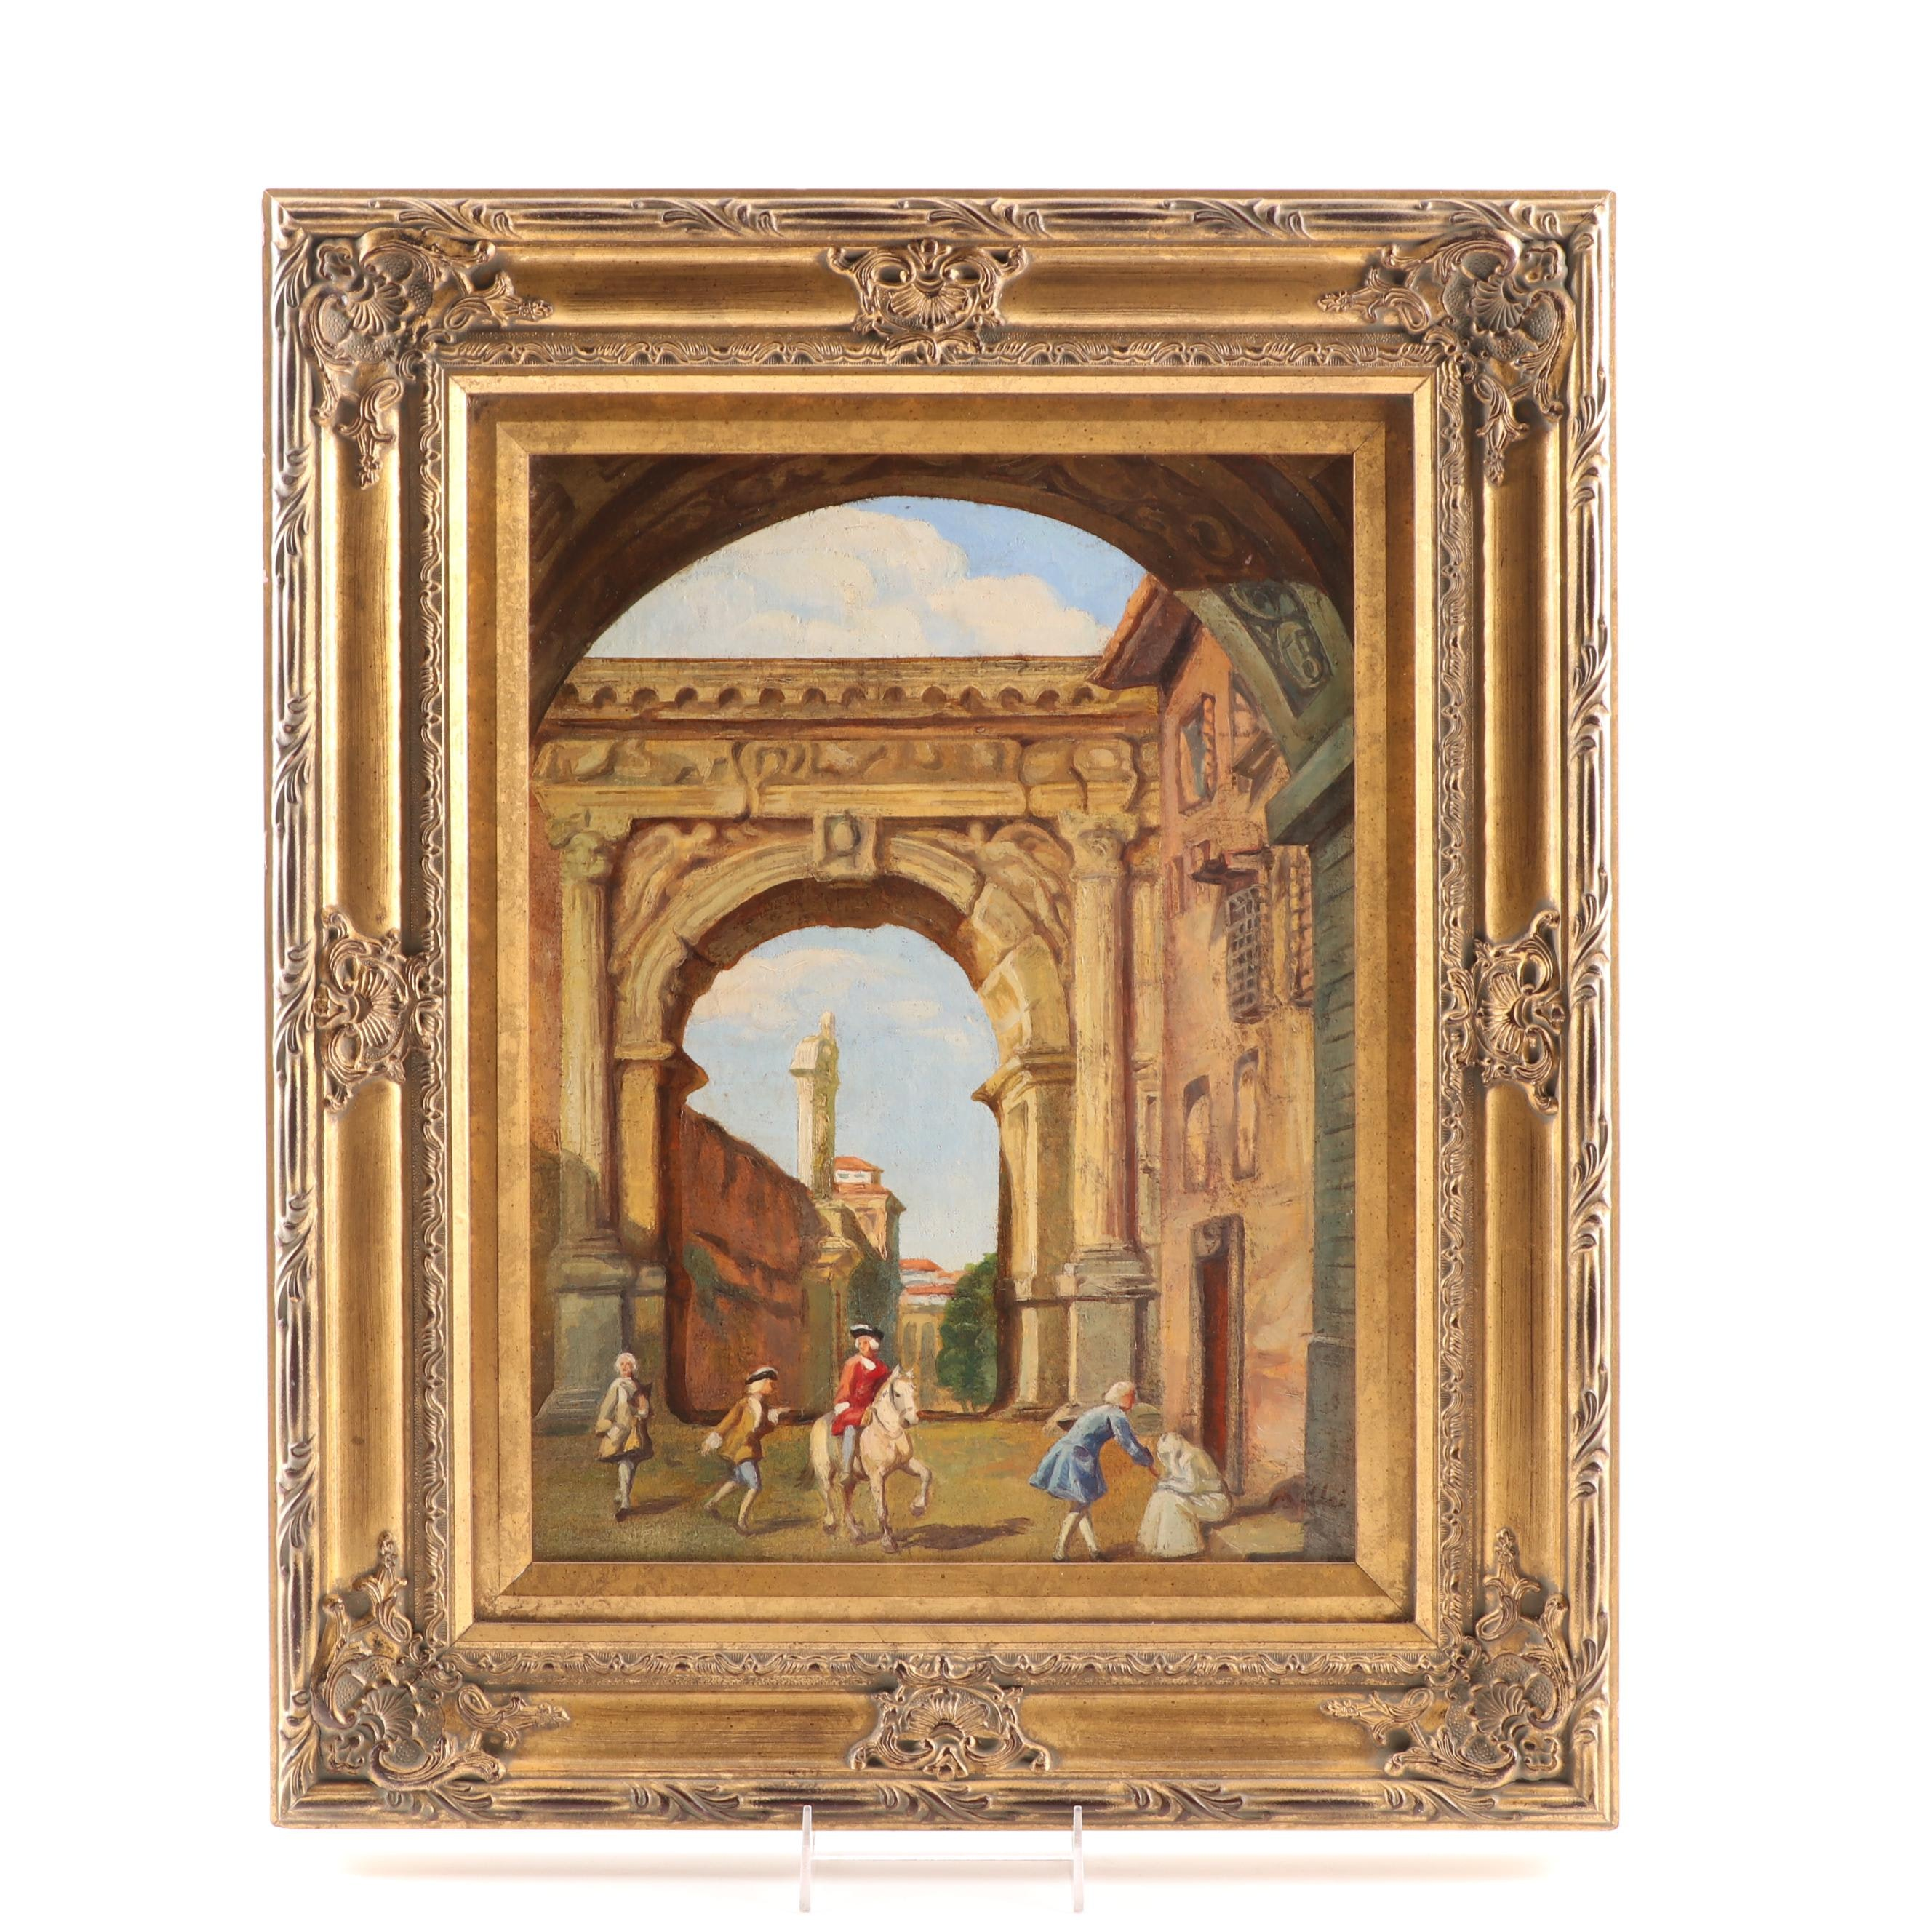 Architectural Scene Oil Painting